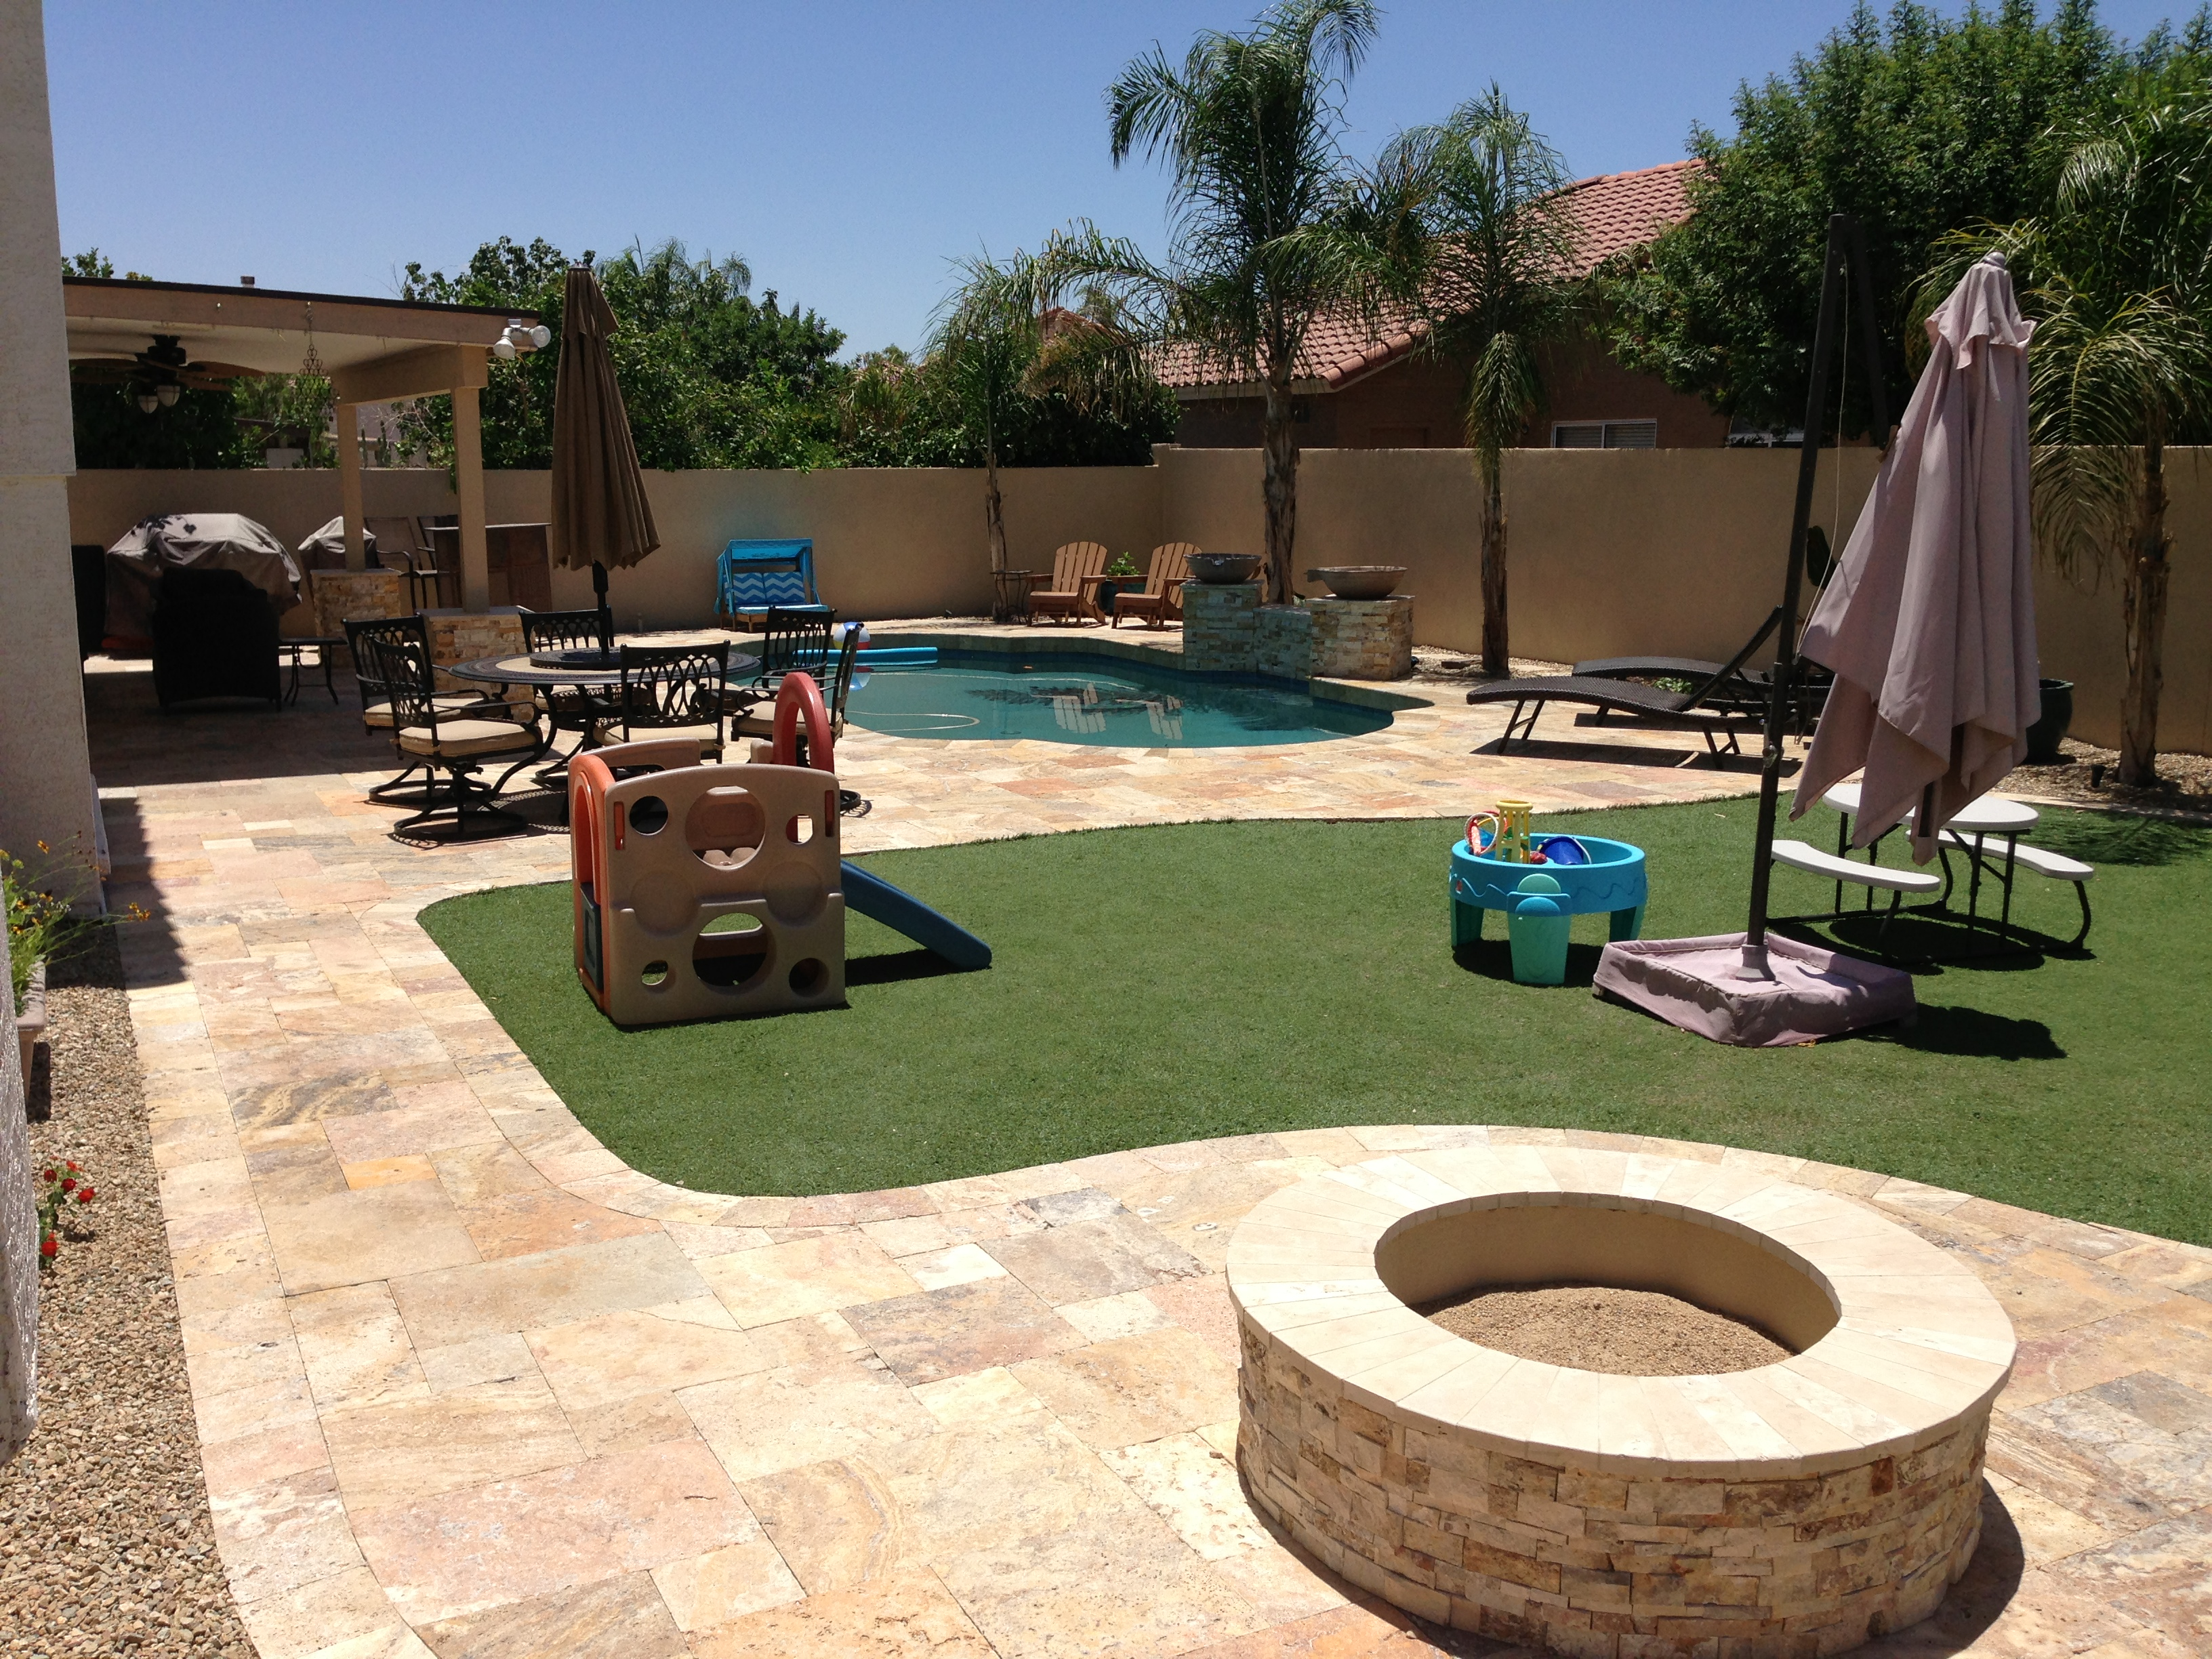 Phoenix area backyard landscape design ideas and news Backyard ideas